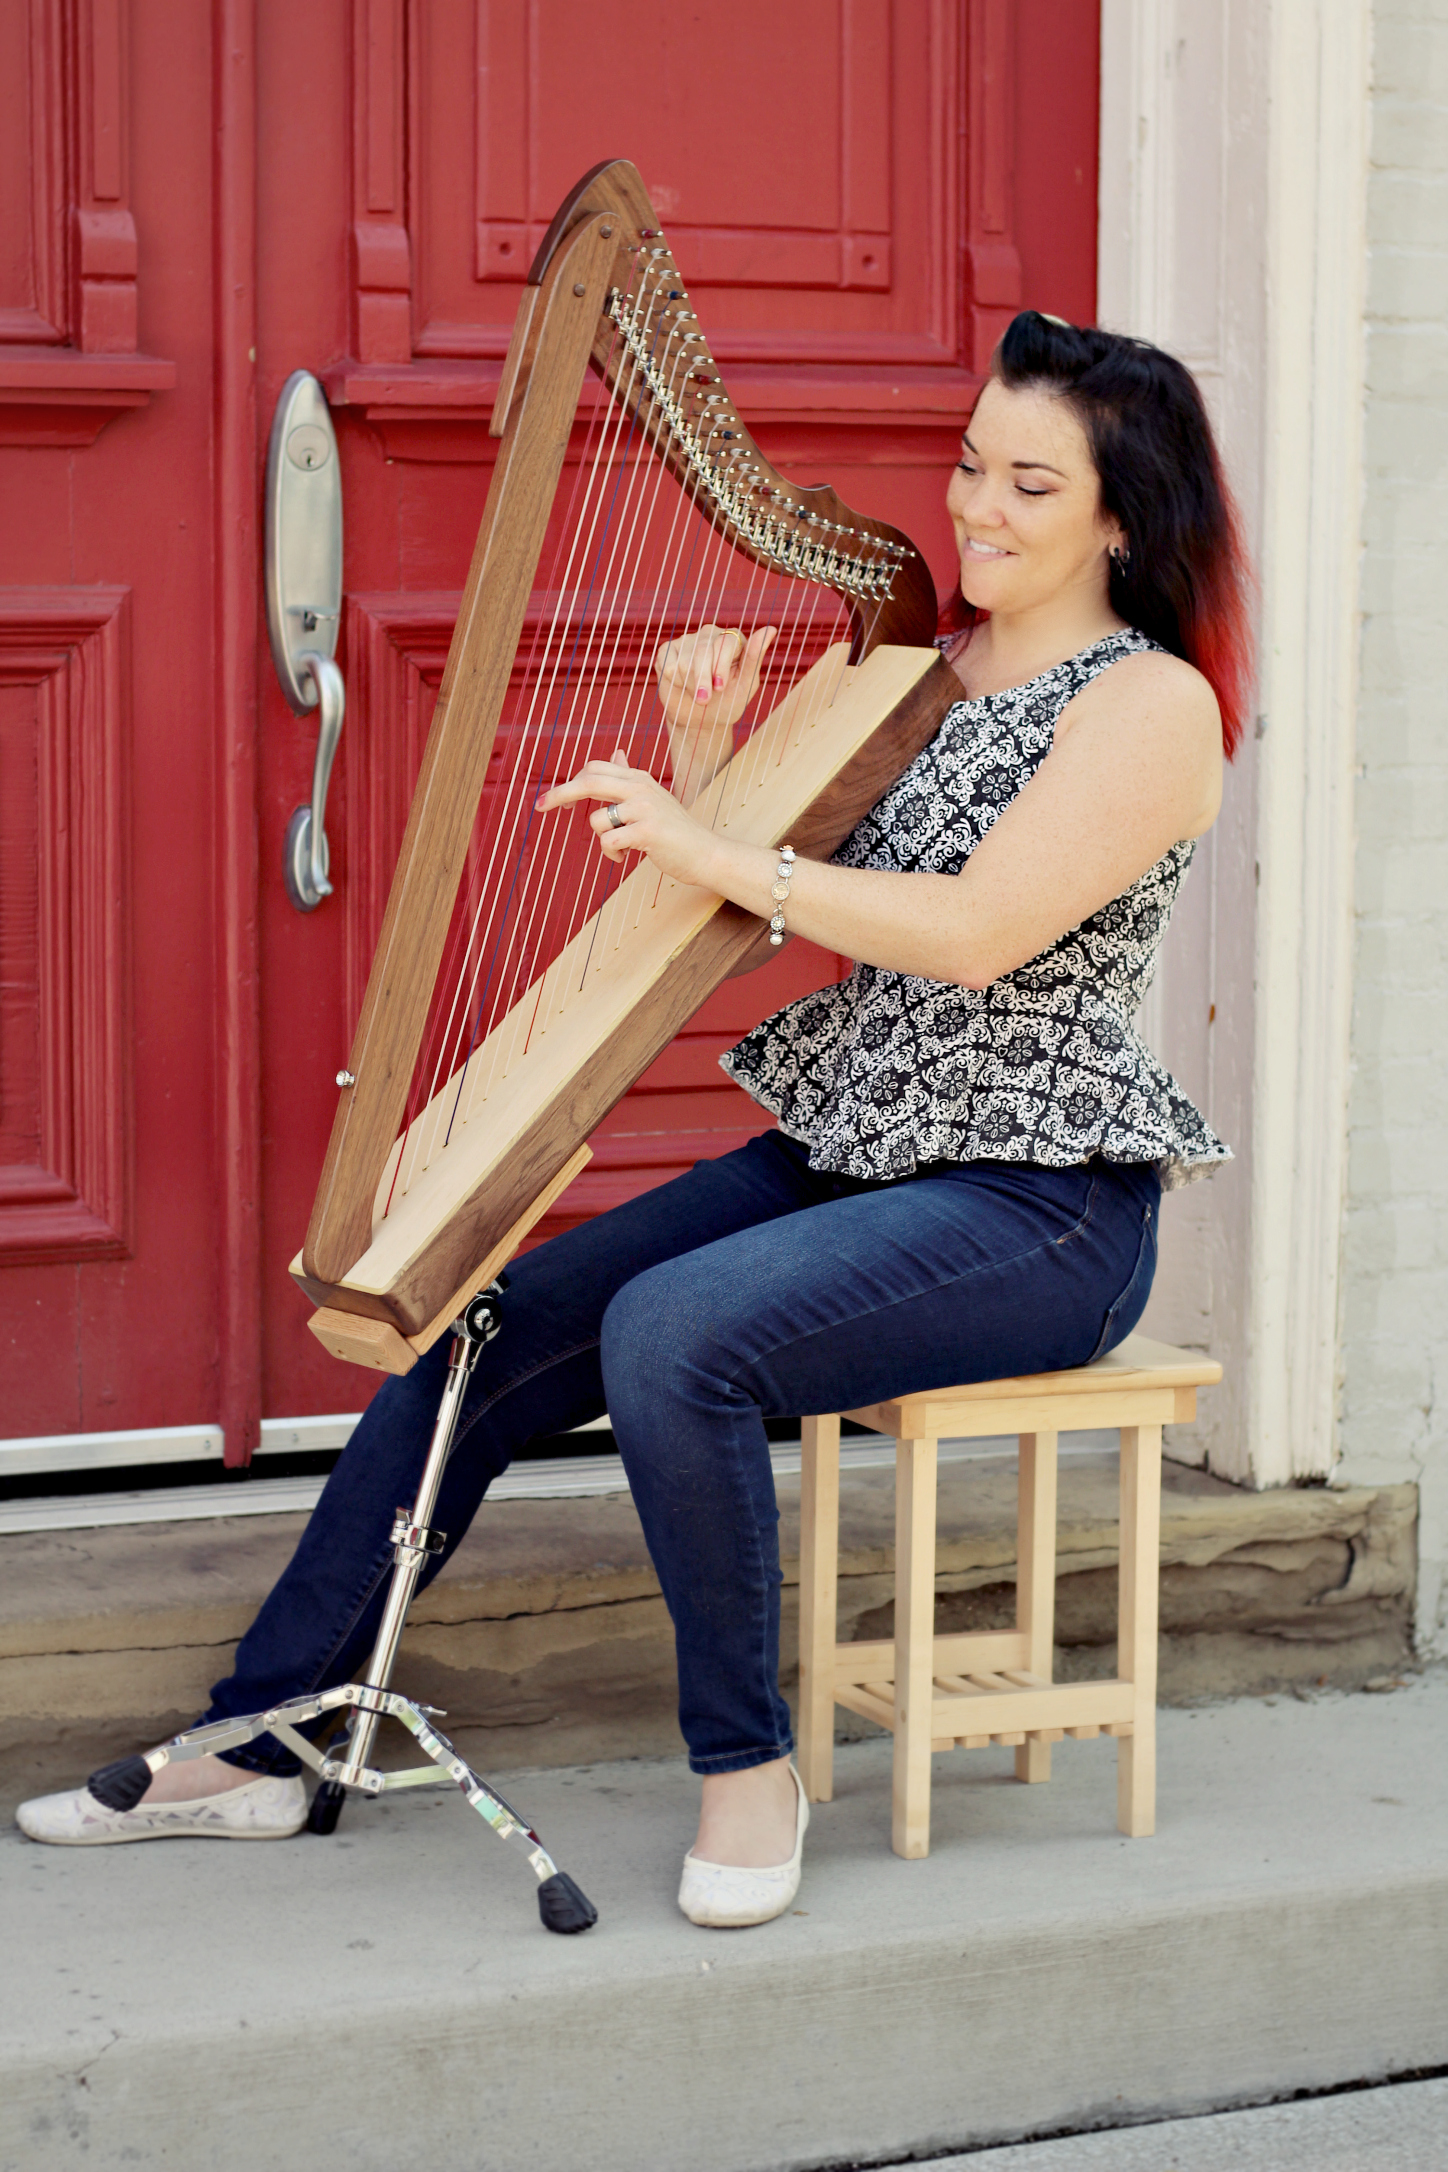 Melissa with a Special Edition Fullsicle™ Harp on an Adjustable Stand.